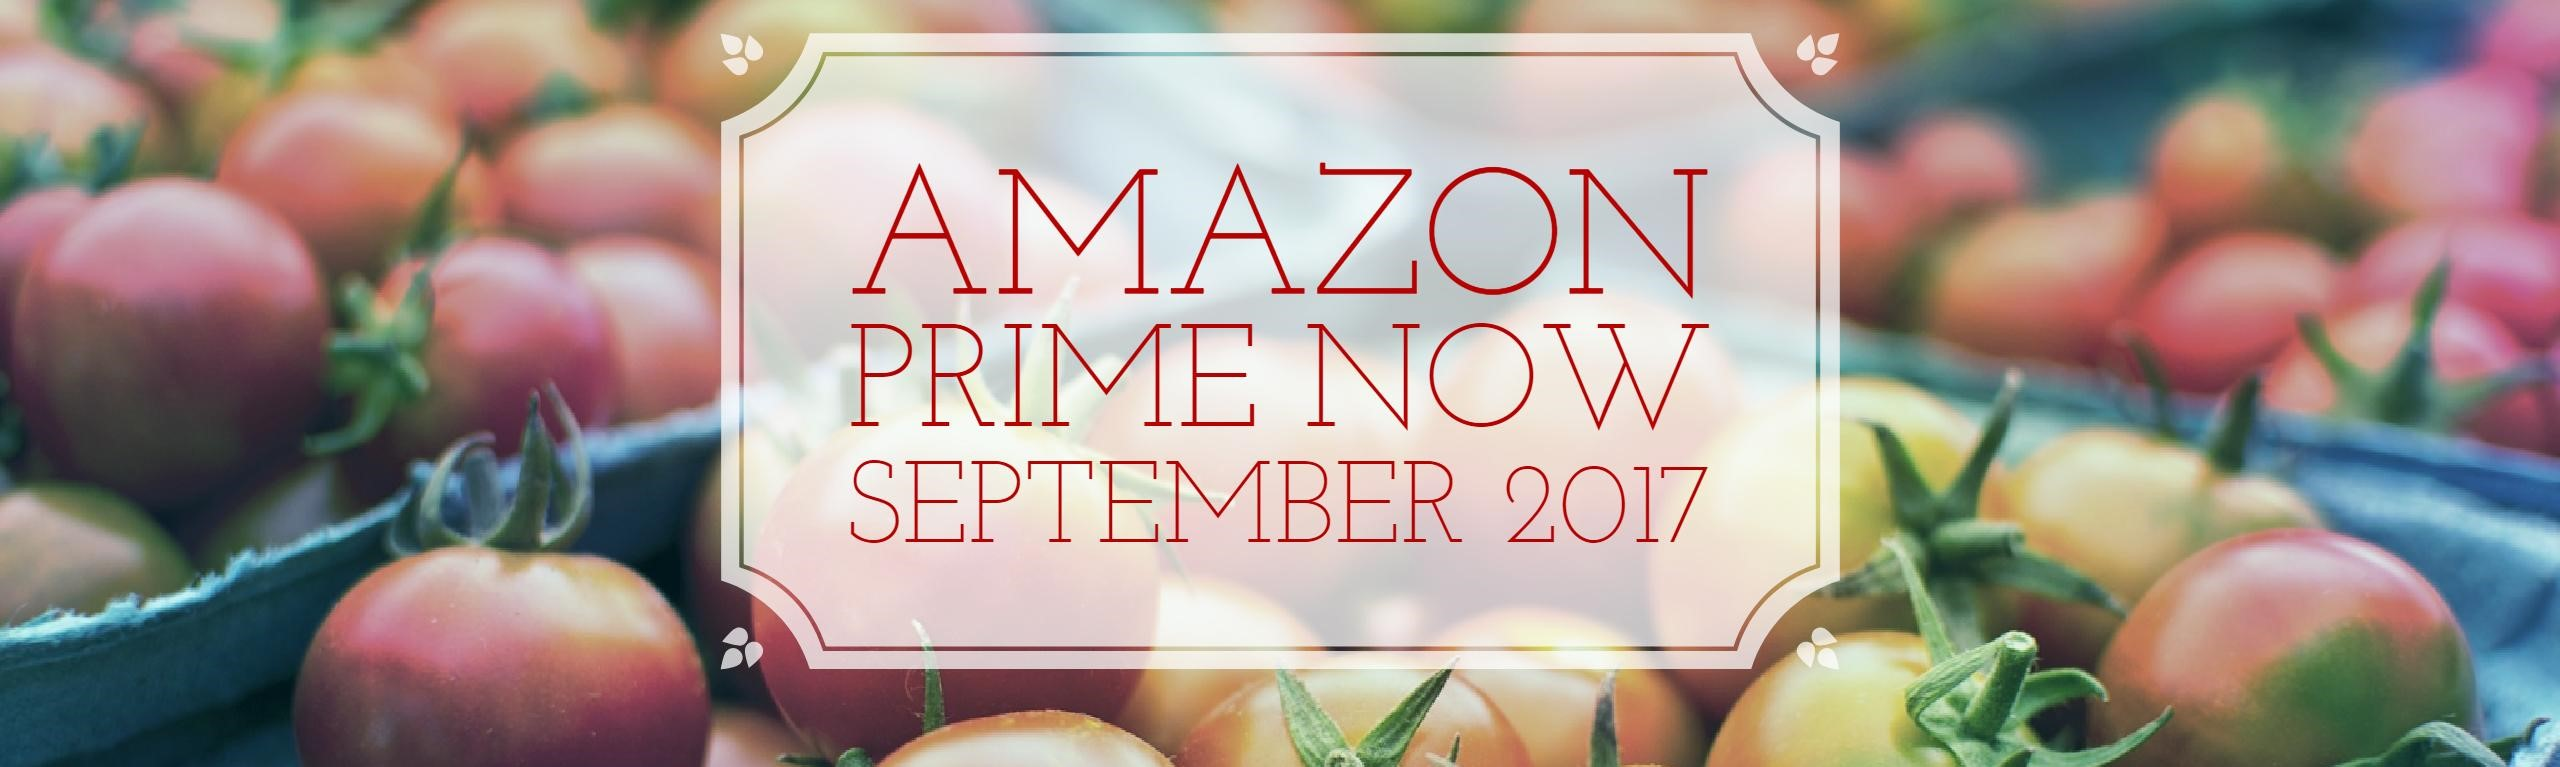 How Many Products Does Amazon Prime Now sell? September 2017 update